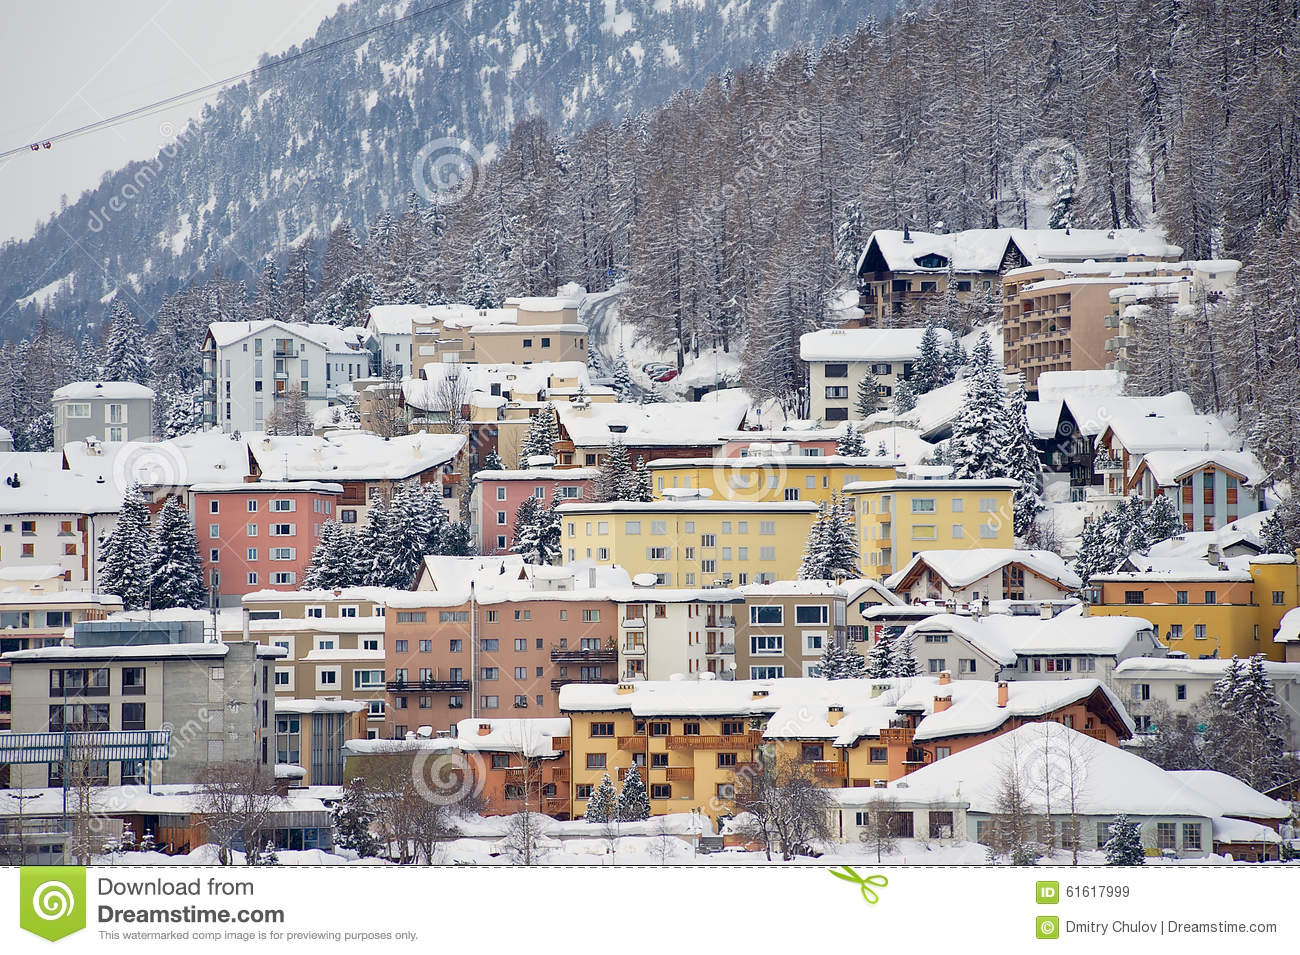 view to the buildings of st. moritz, switzerland. st.moritz is the